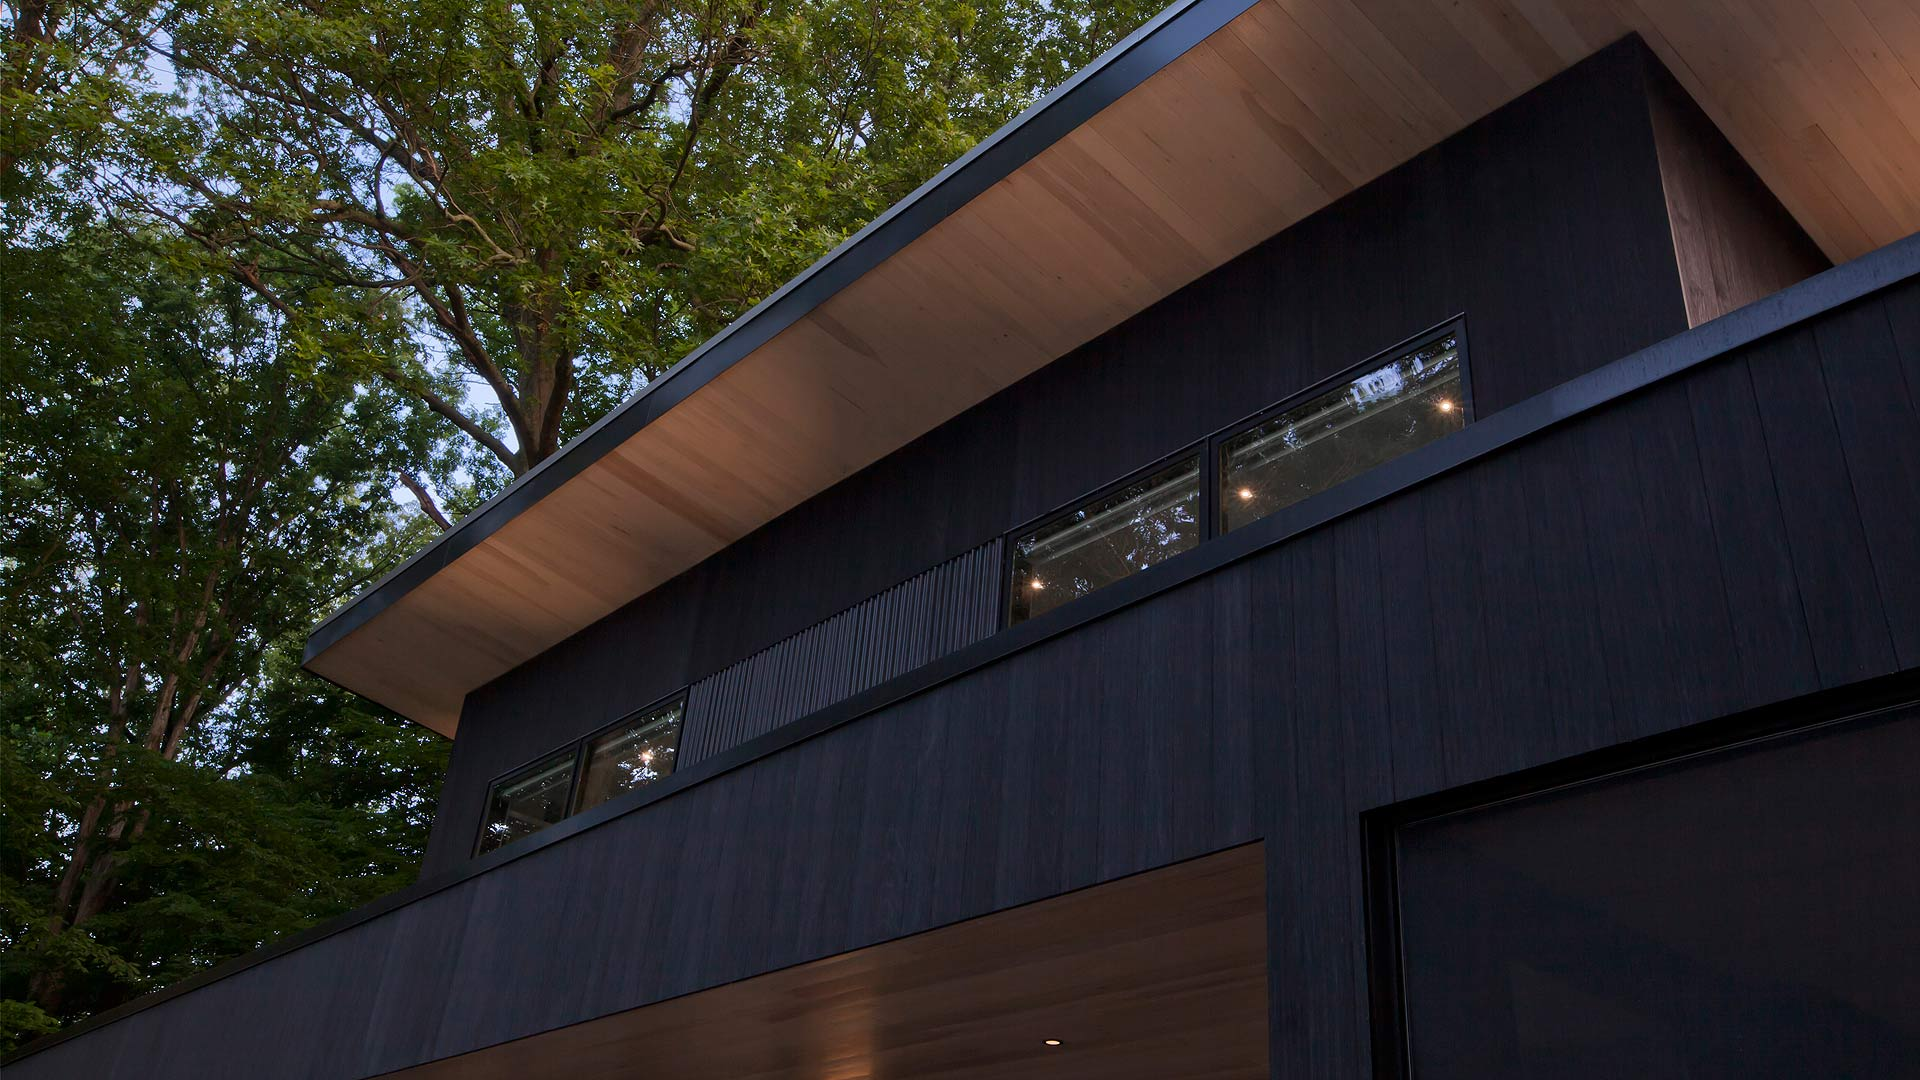 Eastern White Pine Soffit contrasts with Shou Sugi Ban Charred Wood Black Siding and black corrugated metal - Lakeside Modern Cottage (H-LODGE) - Unionville, Indiana, Lake Lemon